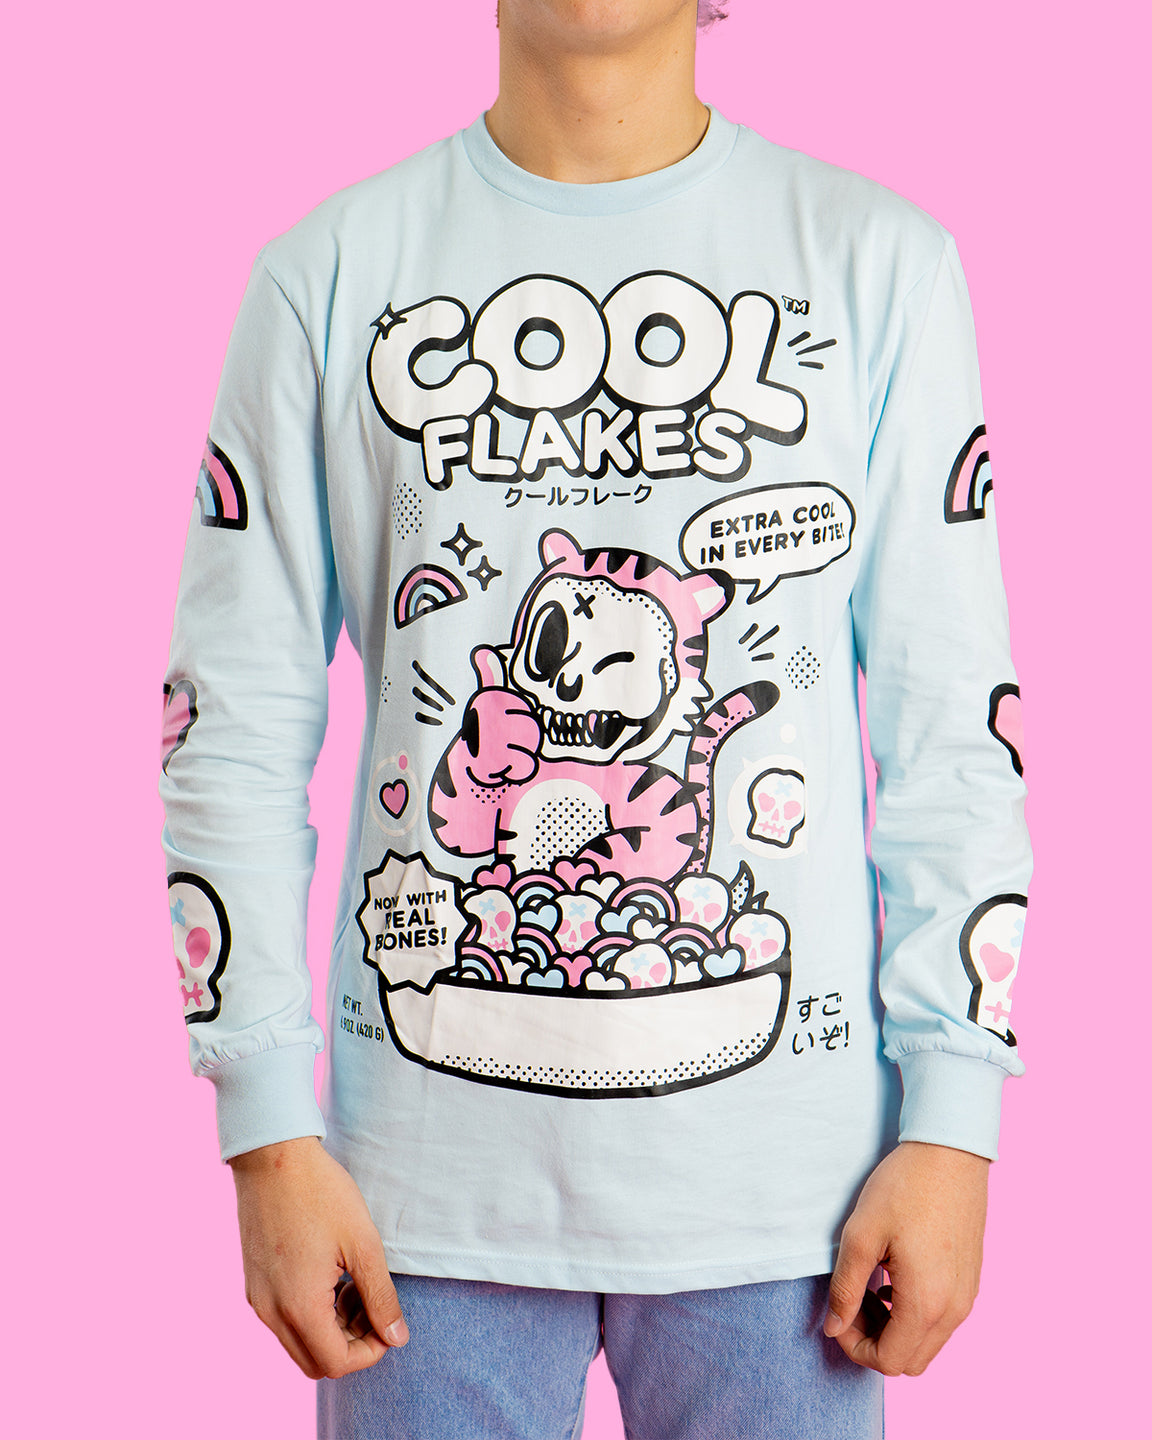 The Cool Flakes Longsleeve